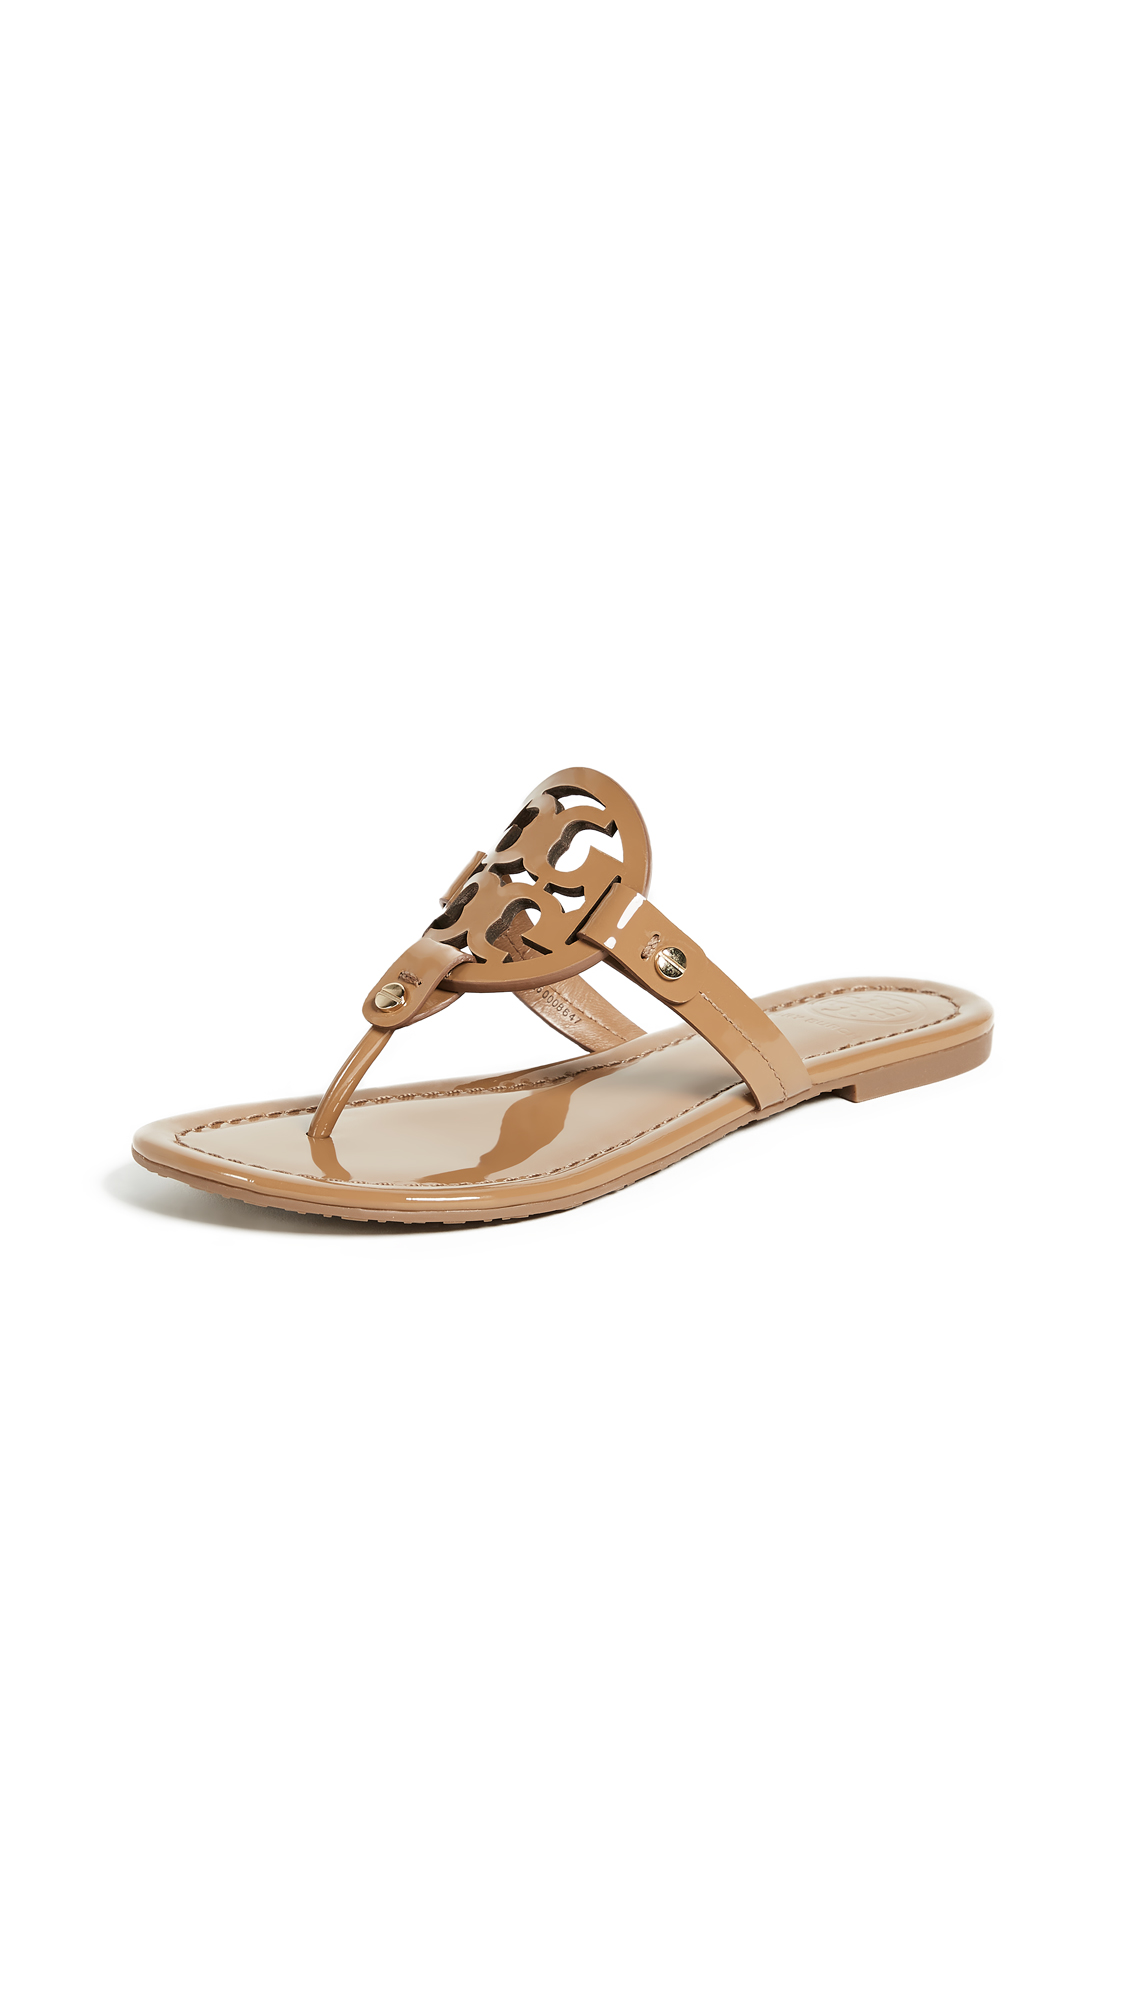 Tory Burch Miller Thong Sandals - Sand